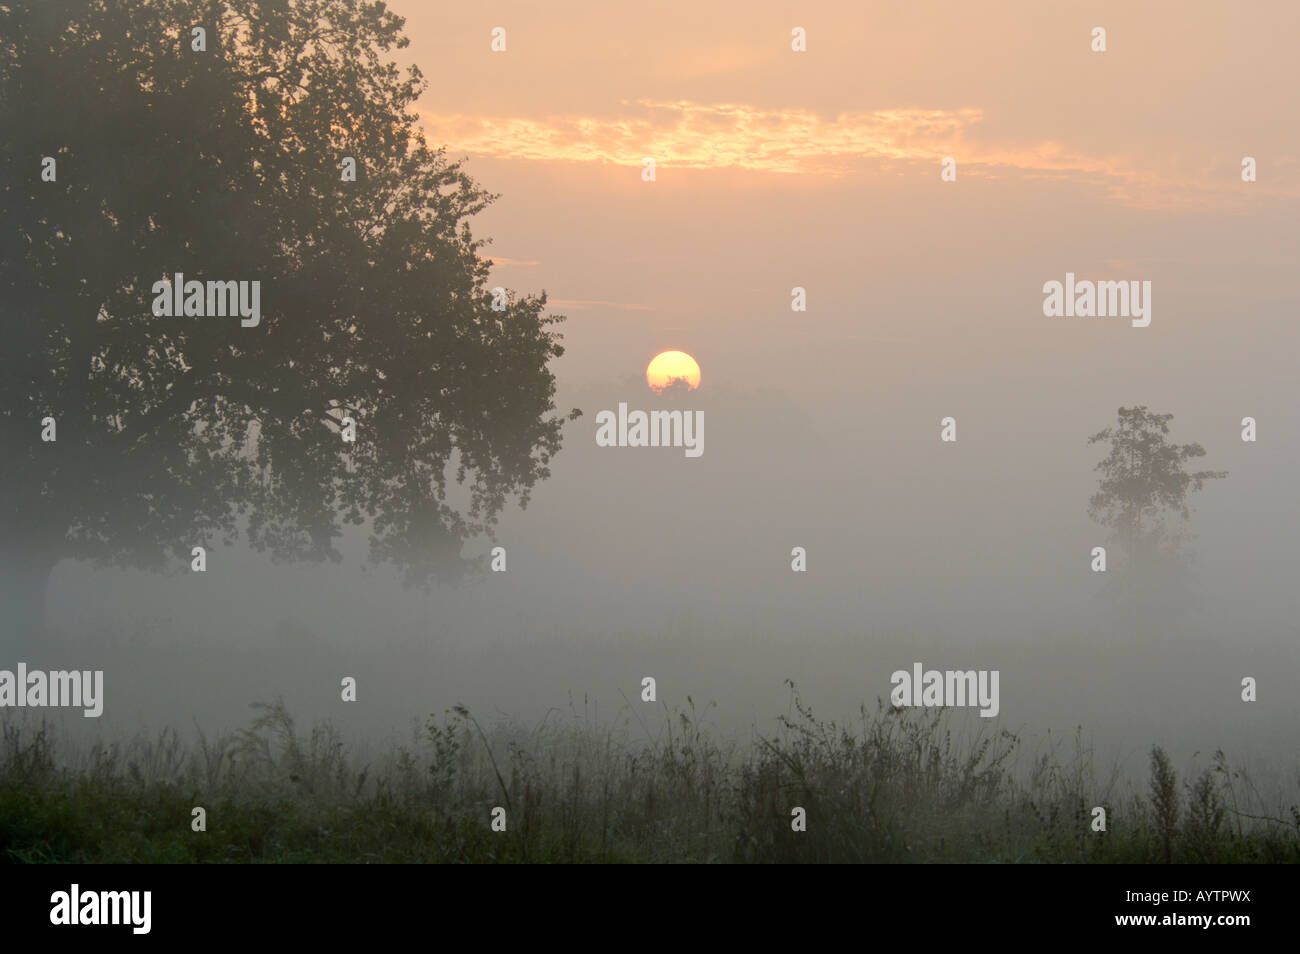 Sunrise at river Nuthe near Bergholz Rehbruecke, Nuthetal, district Potsdam Mittelmark, Brandenburg, Germany Stock Photo